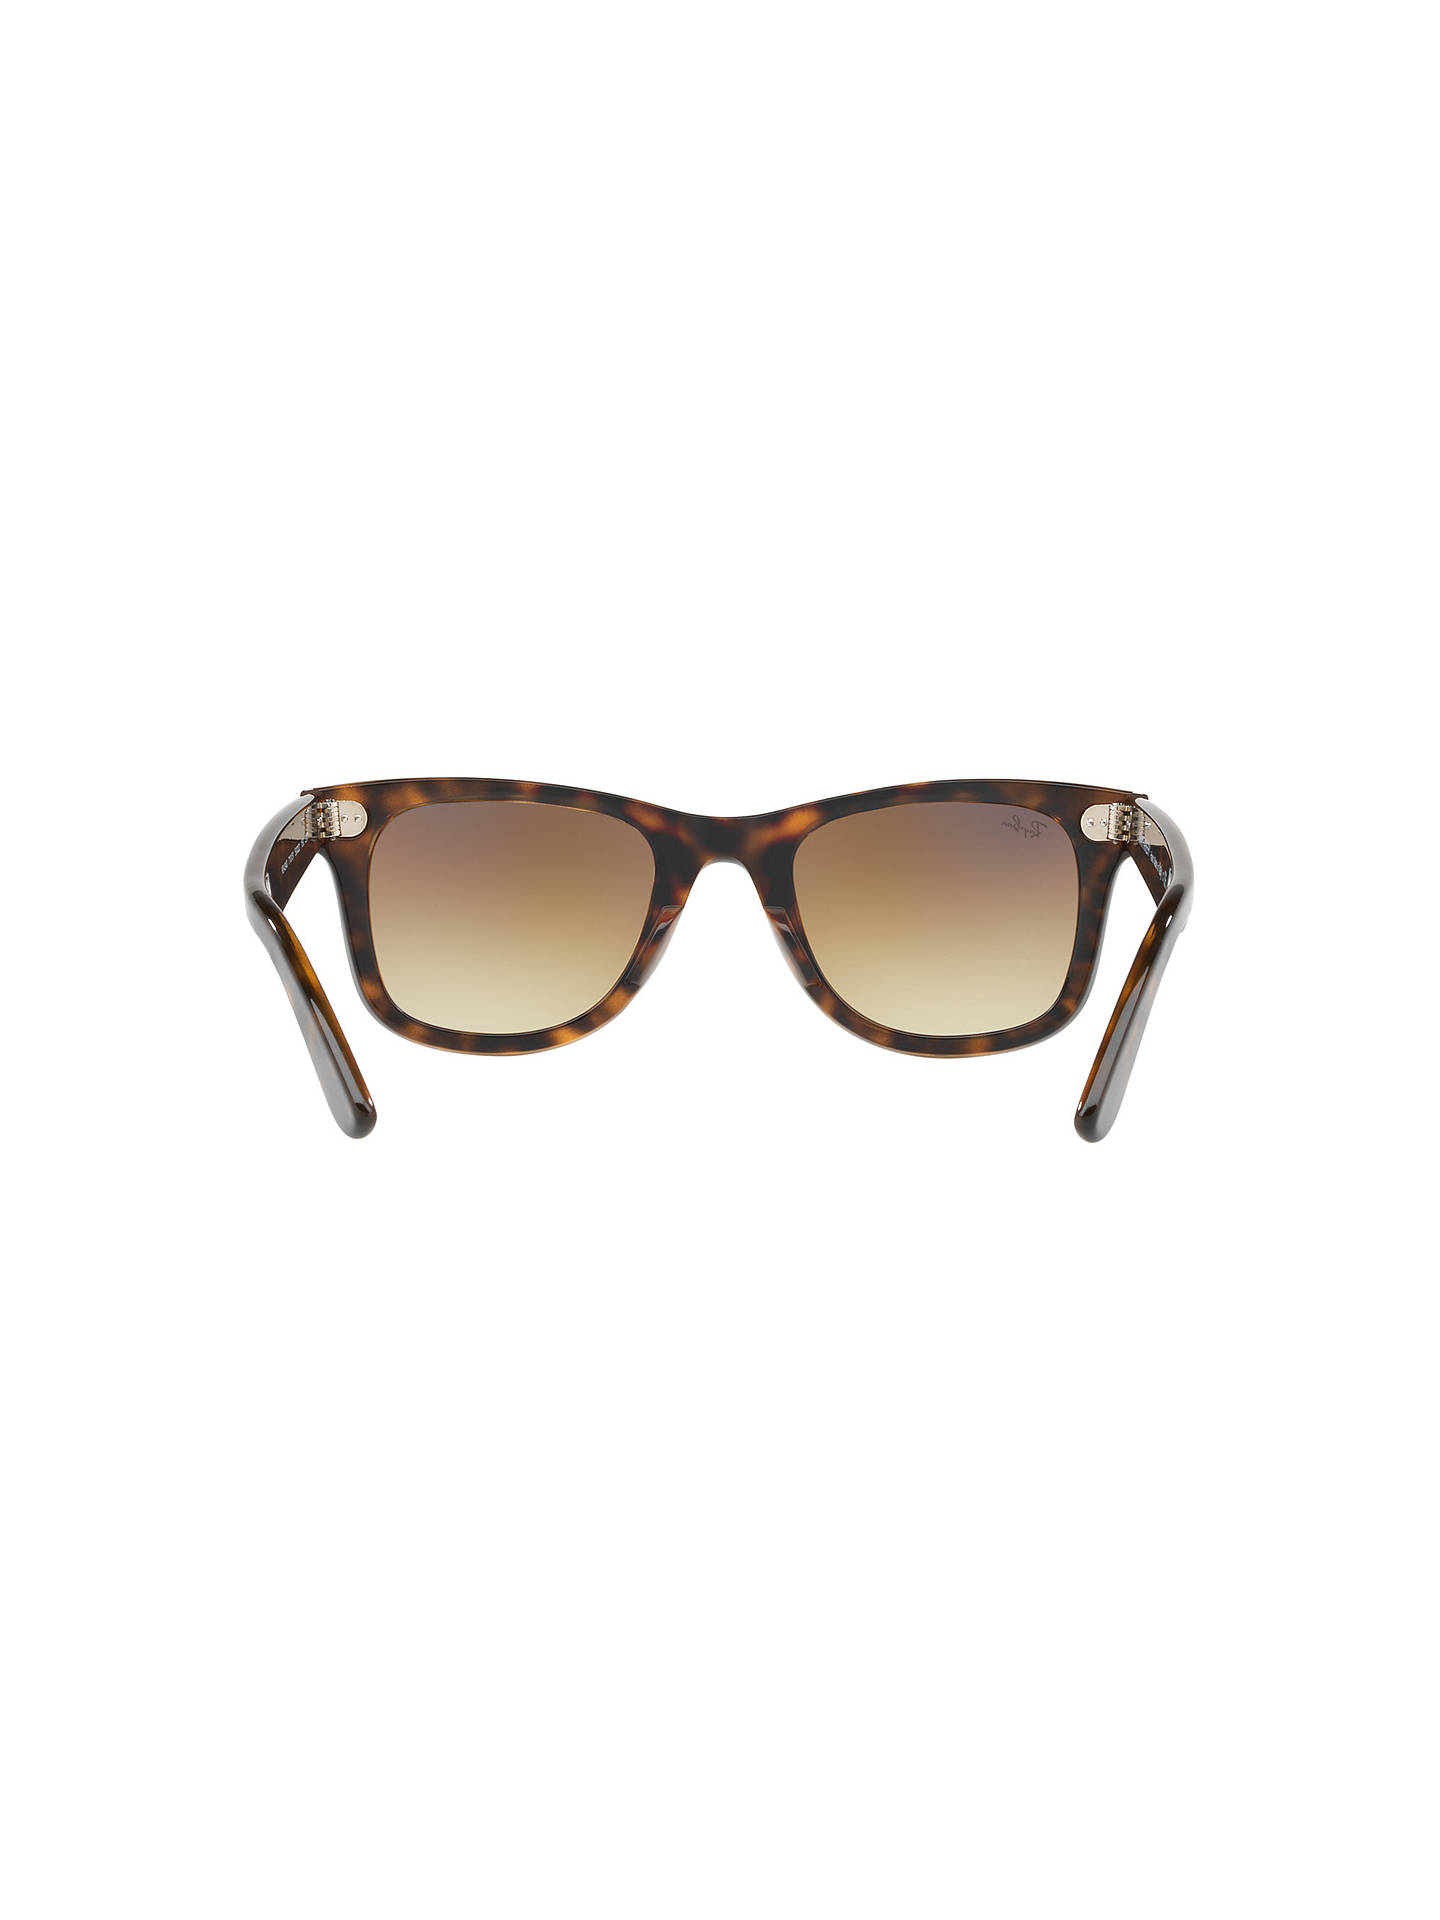 BuyRay-Ban RB4340 Wayfarer Sunglasses, Tortoise/Brown Gradient Online at johnlewis.com